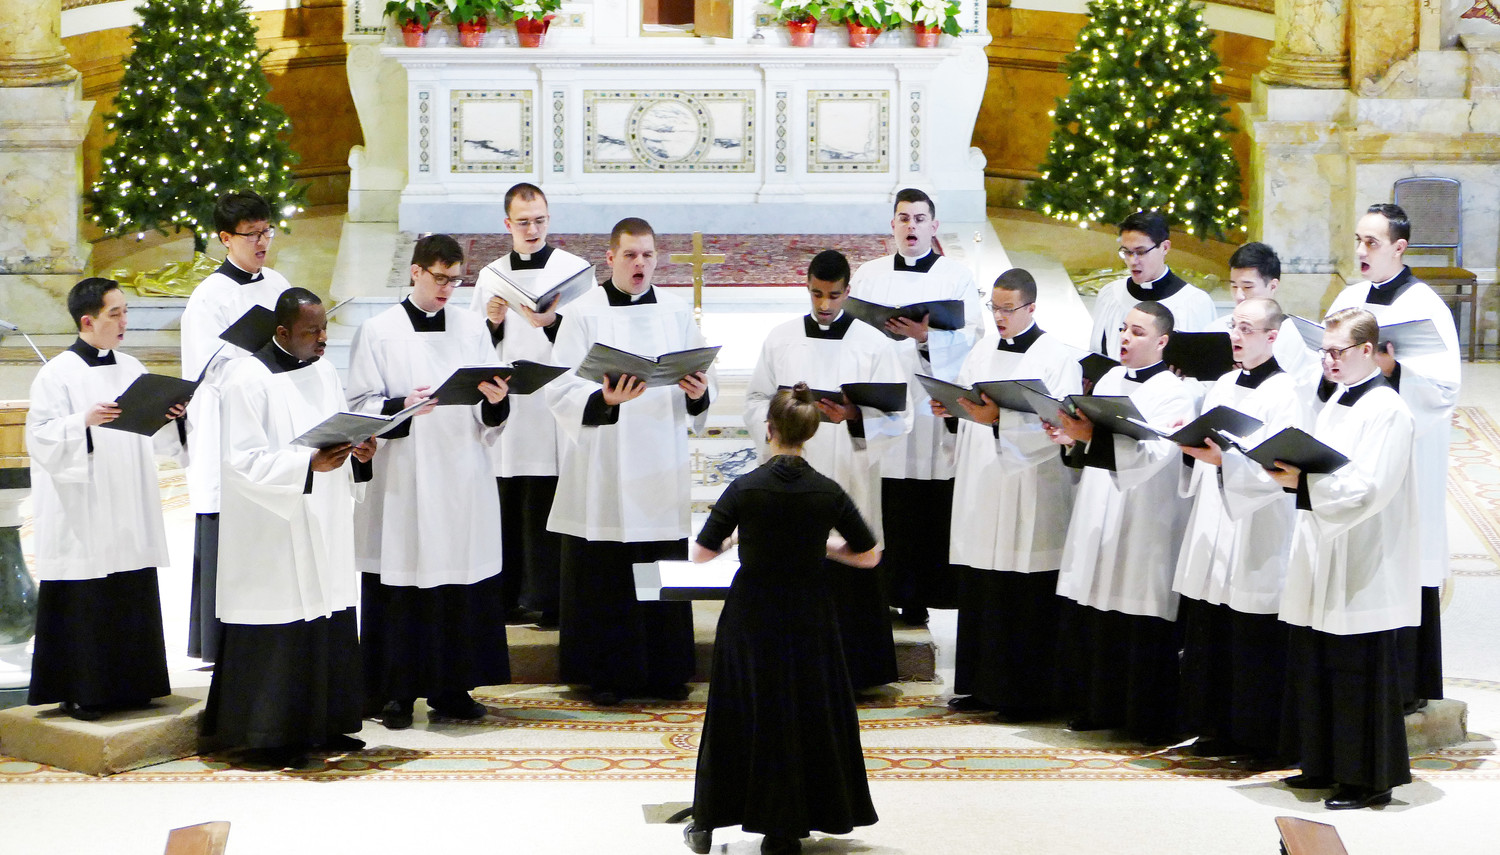 The Schola Cantorum of St. Joseph's Seminary, Dunwoodie, performs an Advent-Christmas concert Dec. 3 in the seminary chapel under the direction of Dr. Jennifer Donelson, associate professor and director of music at St. Joseph's.